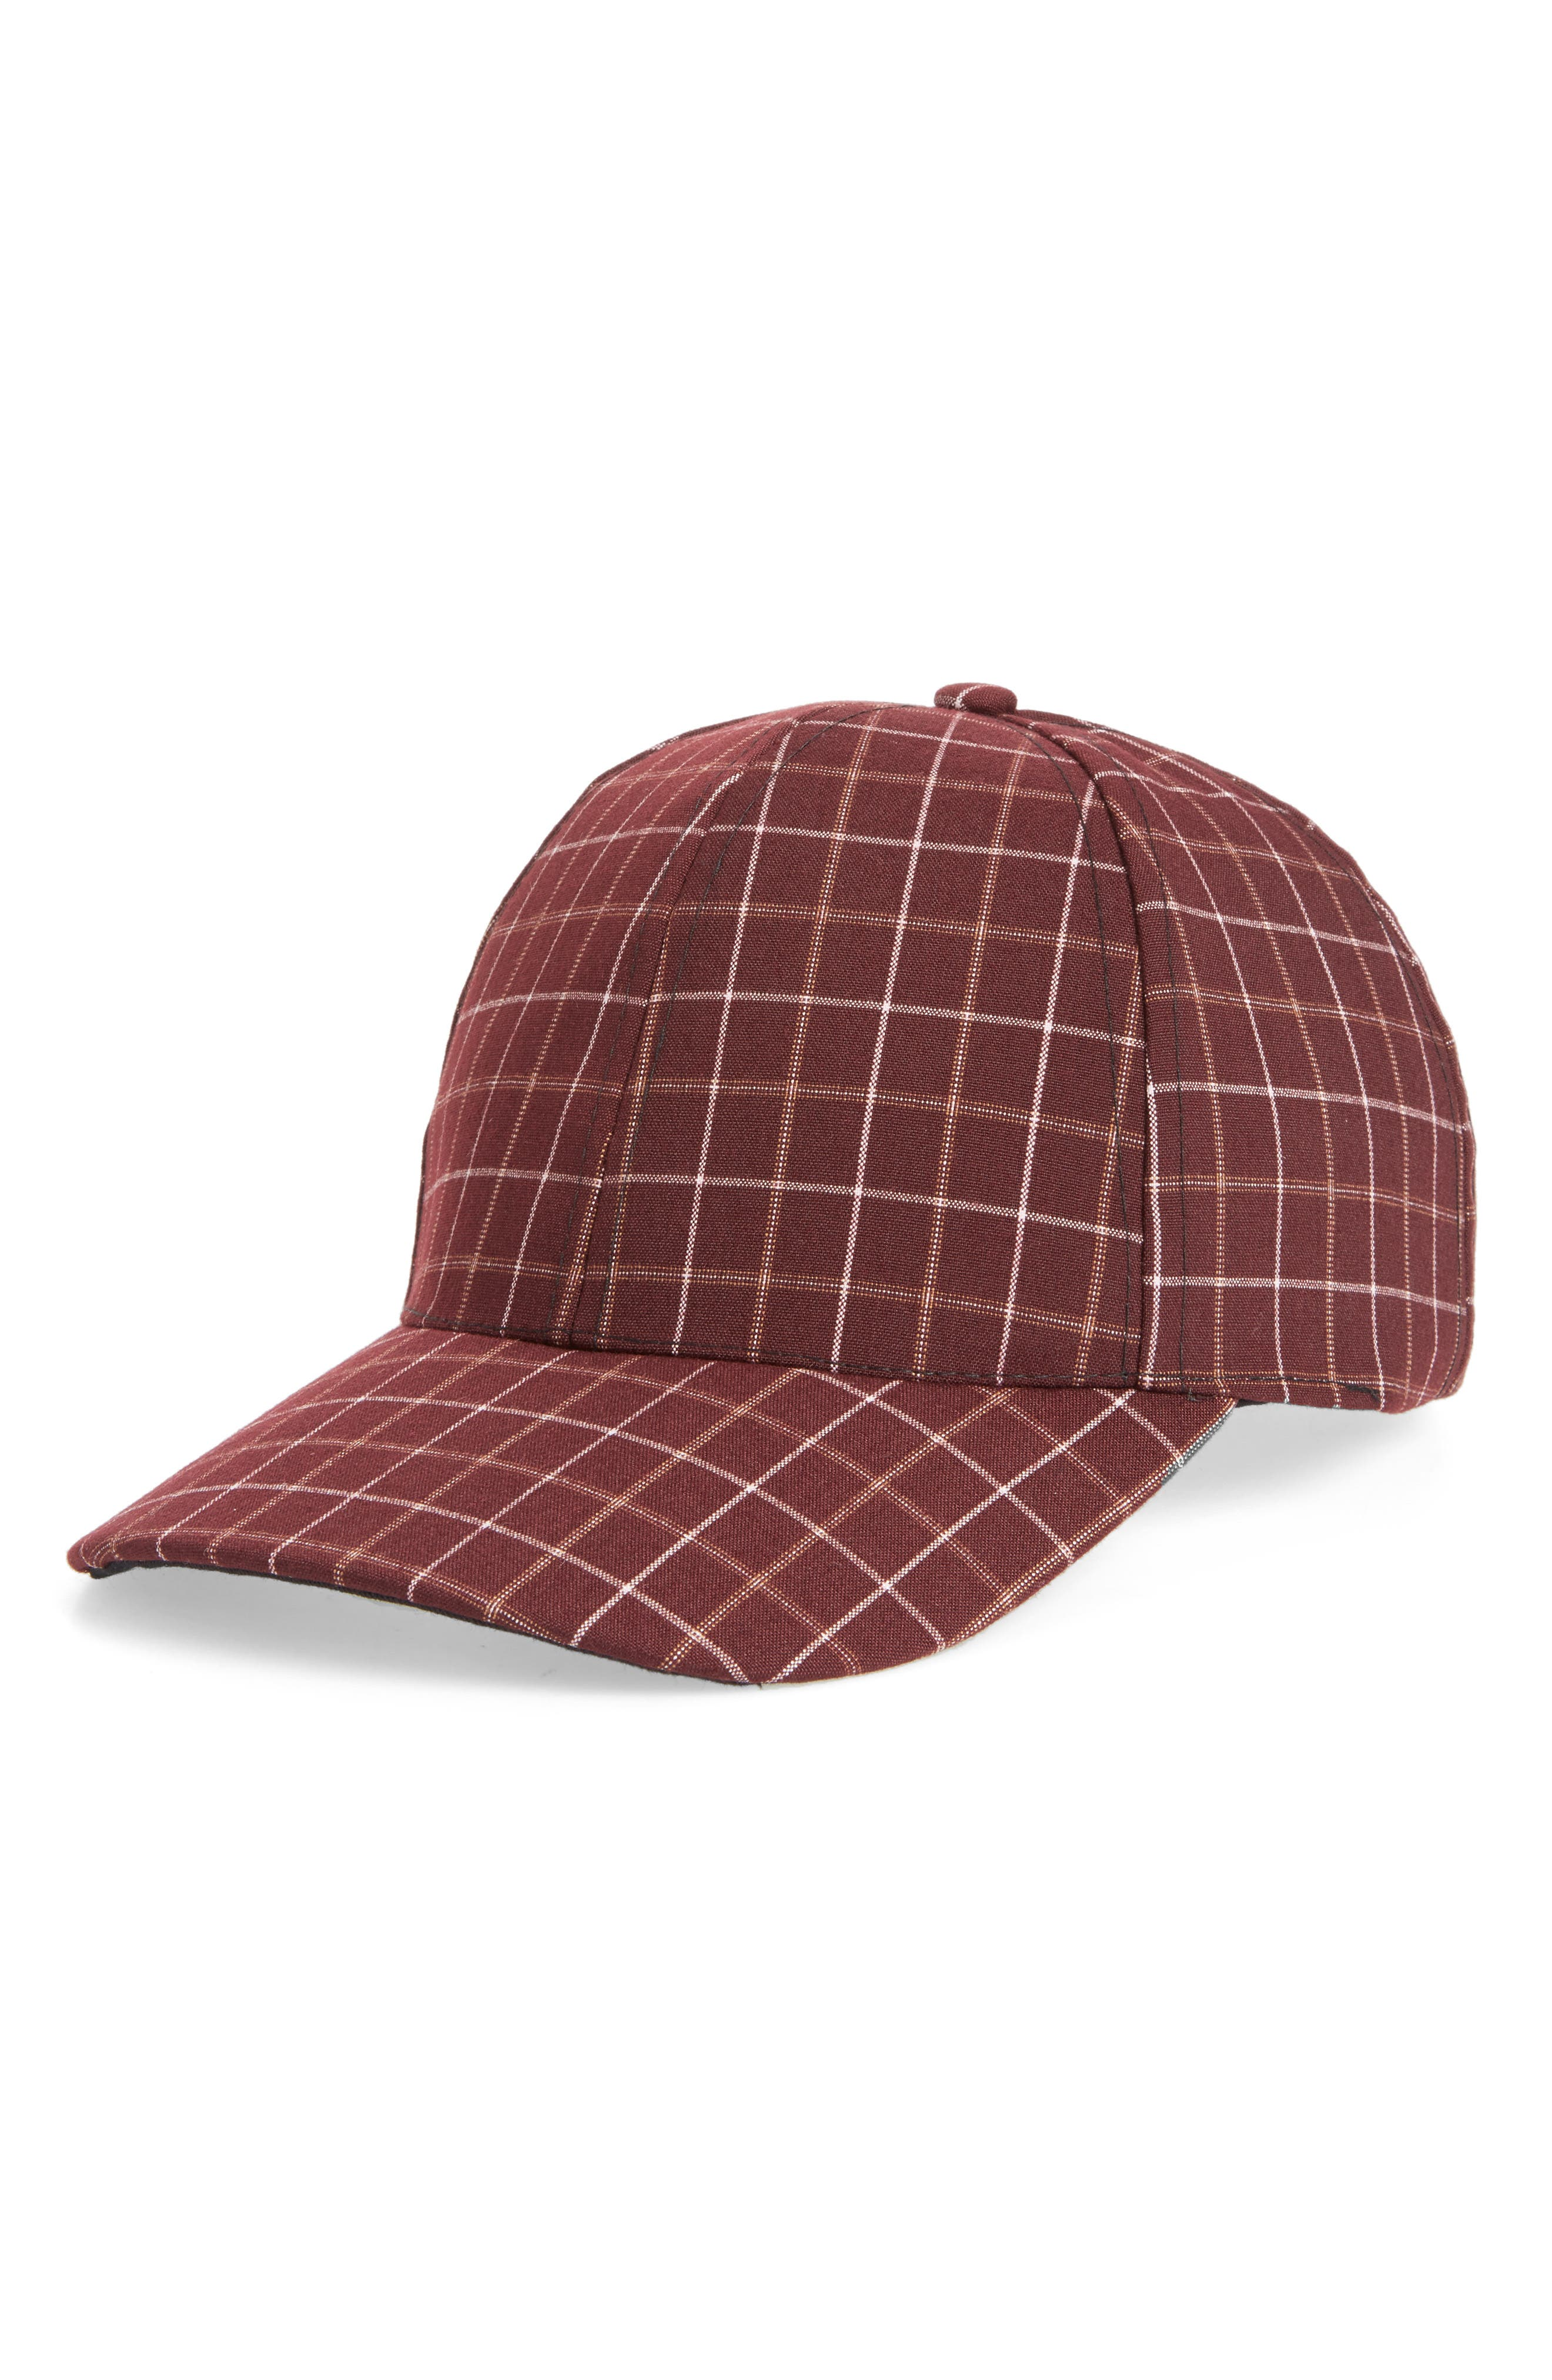 Windowpane Baseball Cap,                         Main,                         color,